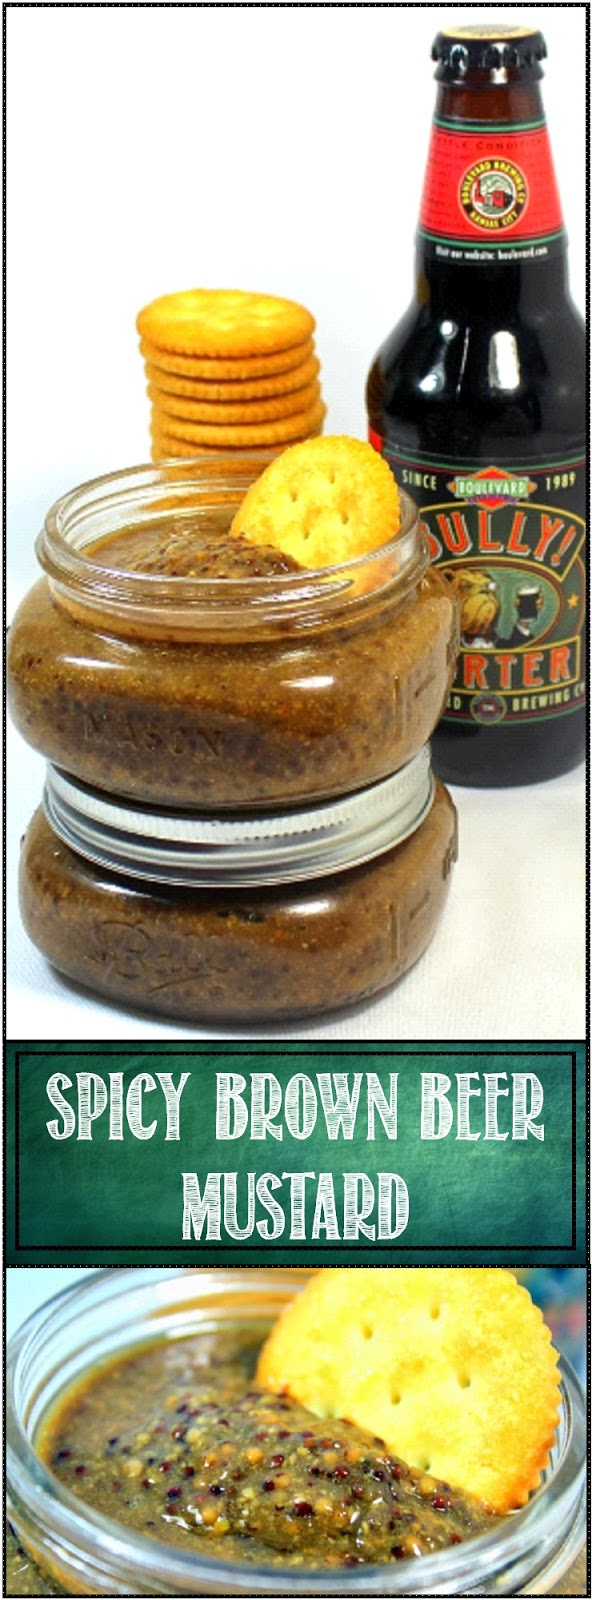 52 Ways to Cook: Spicy Brown Beer MUSTARD - 52 Small Batch Canning